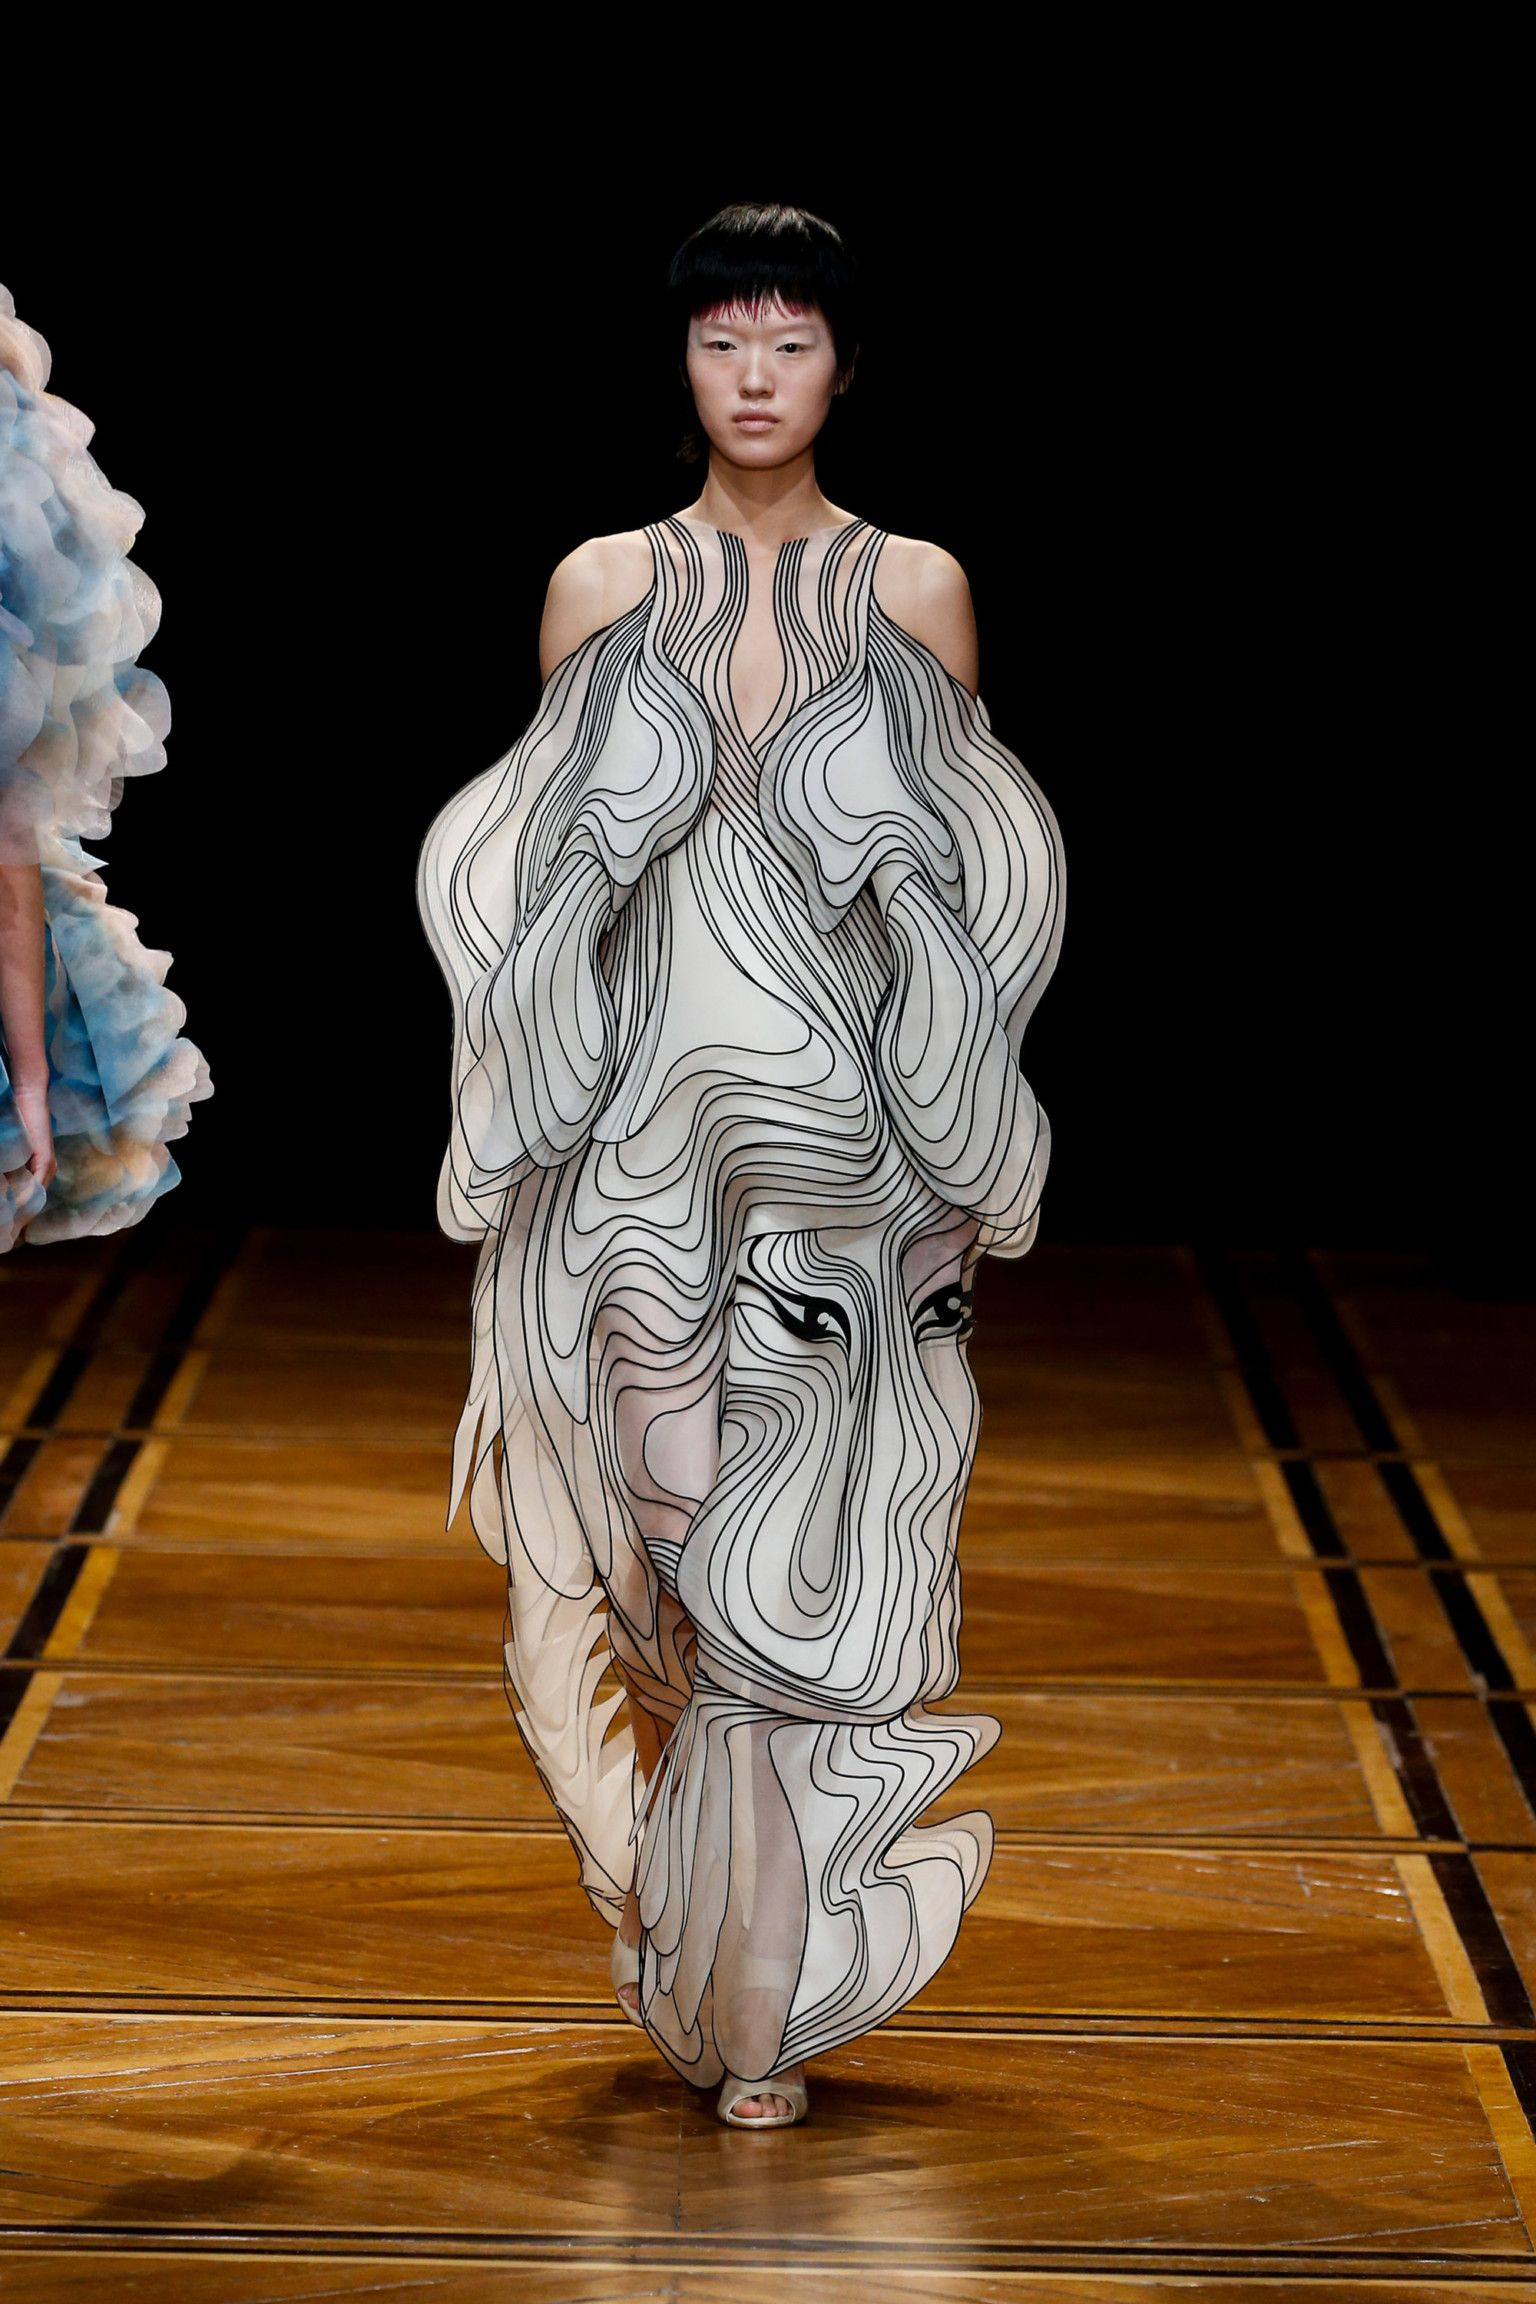 Birds and Faces Emerge From Dizzying Multi-Layered Gowns by Iris Van Herpen #wearableart